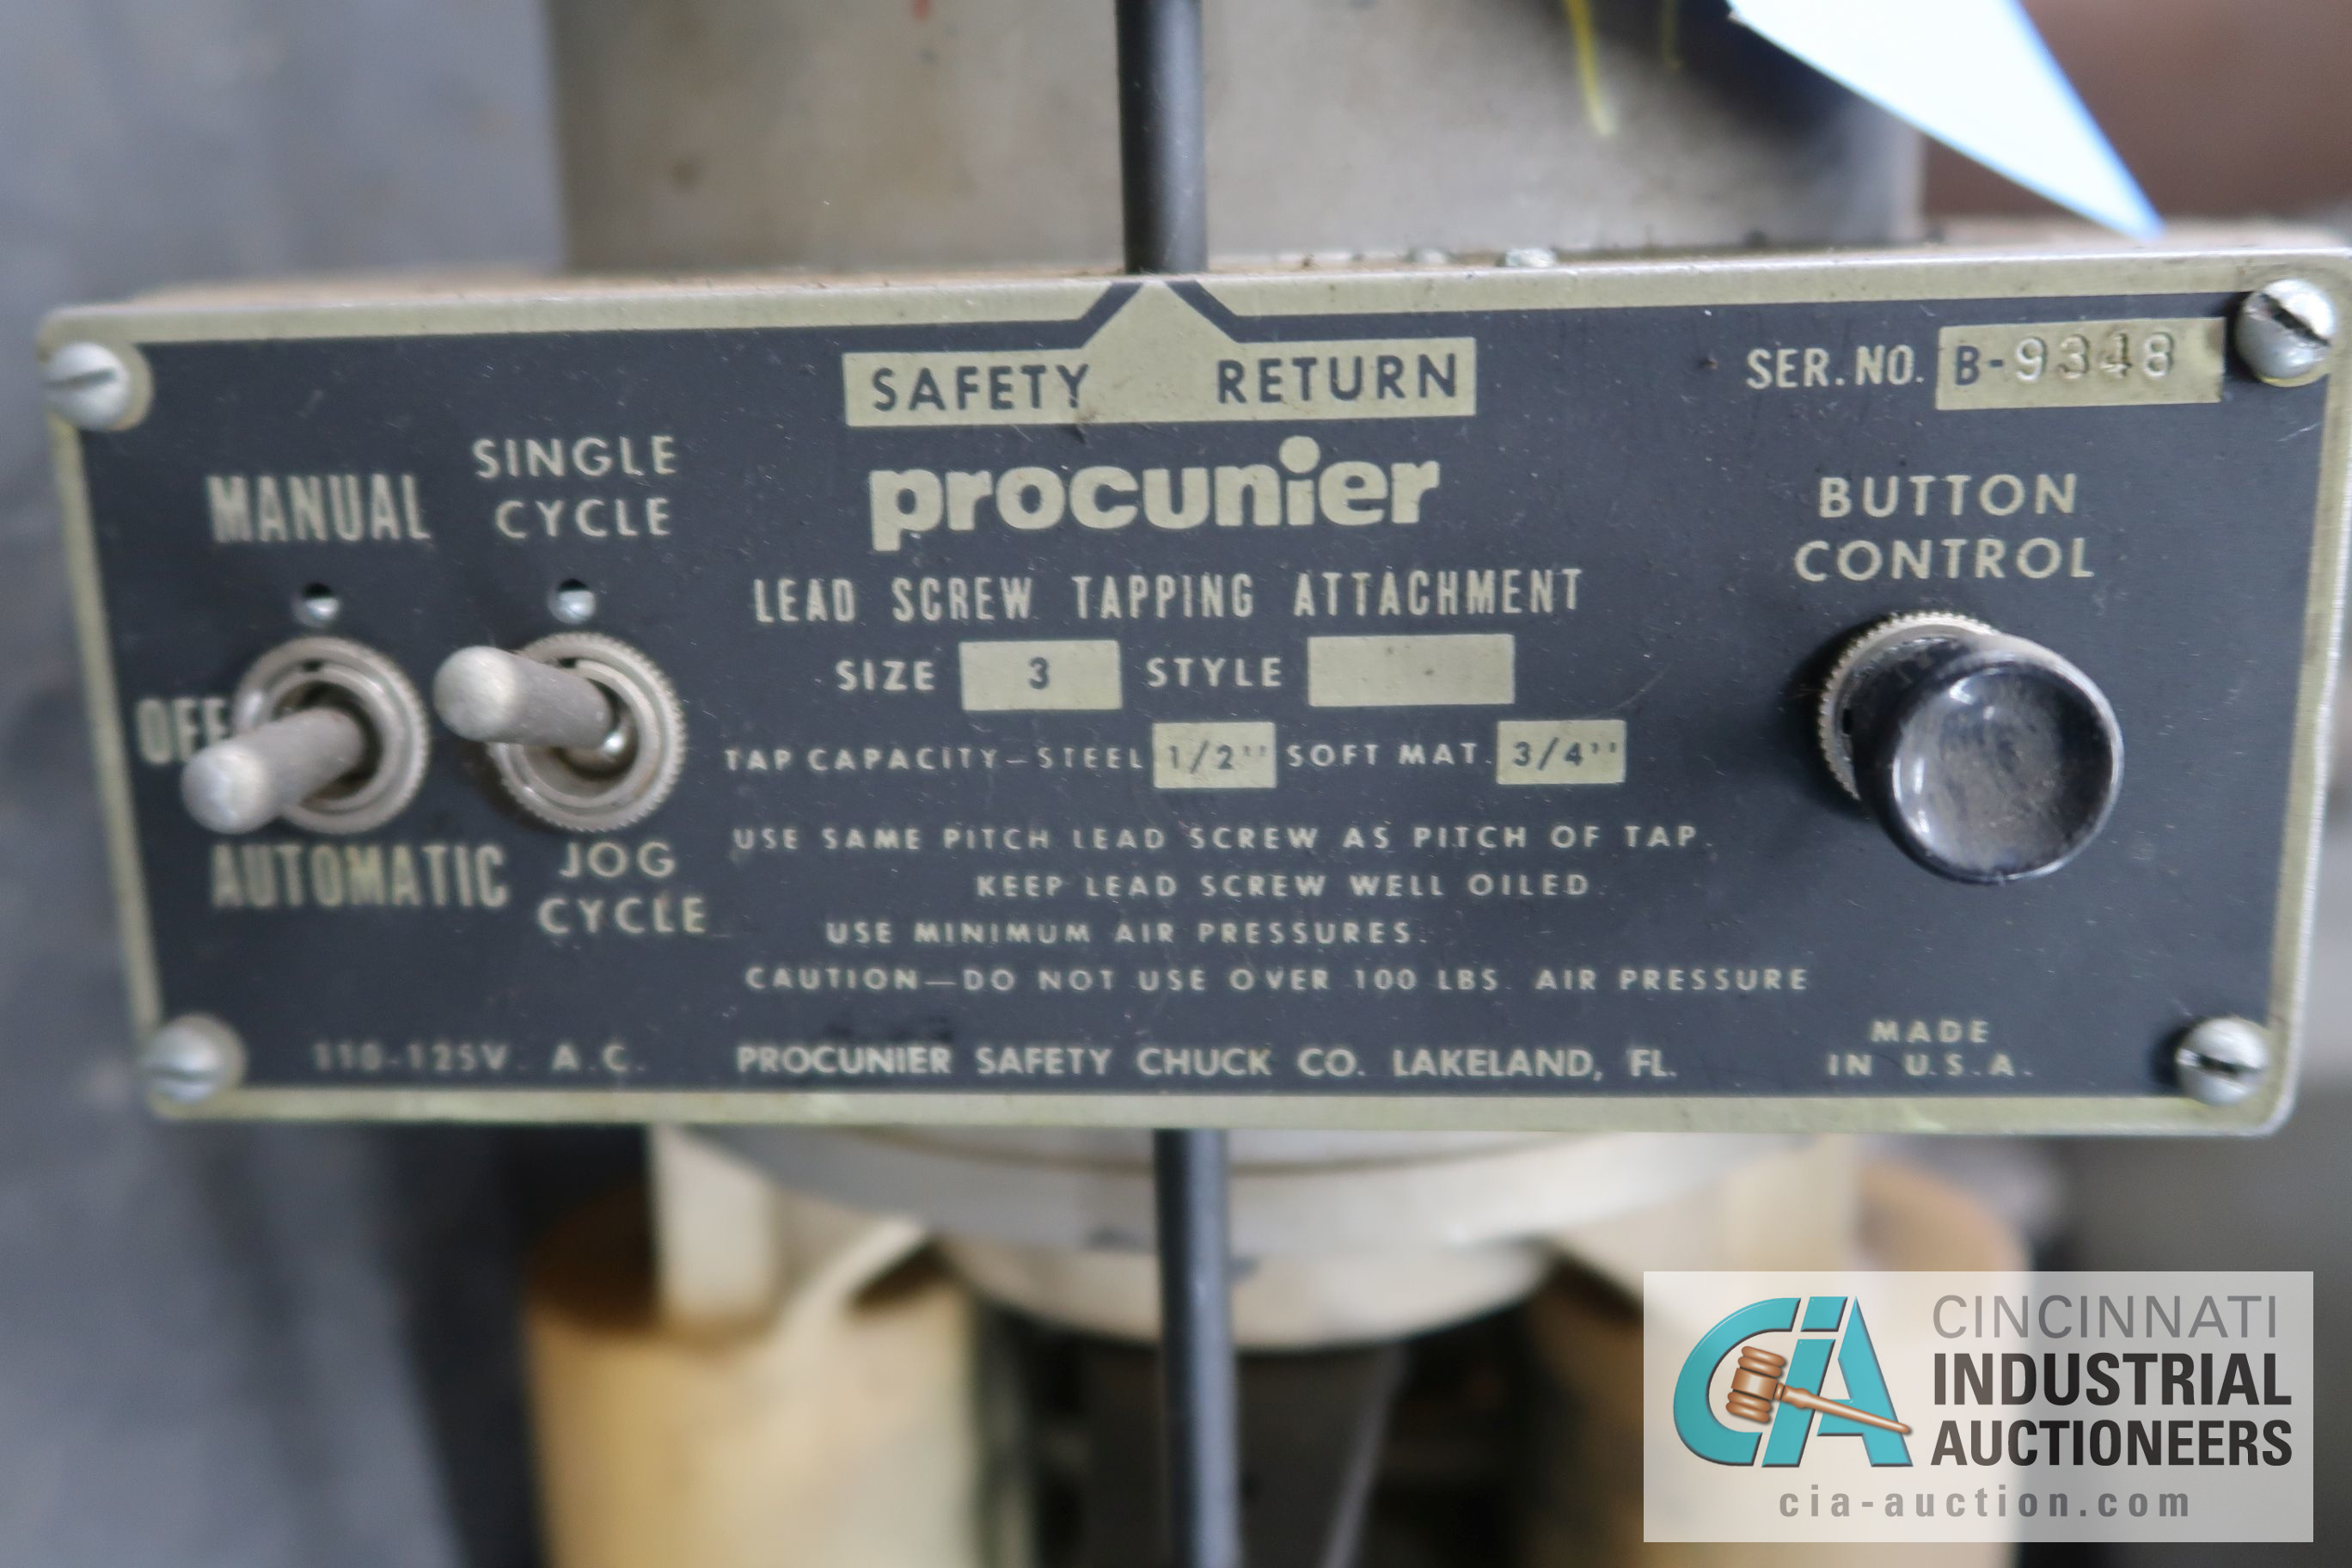 PROCUNIER MODEL 3 TAPPING HEAD - Image 2 of 3